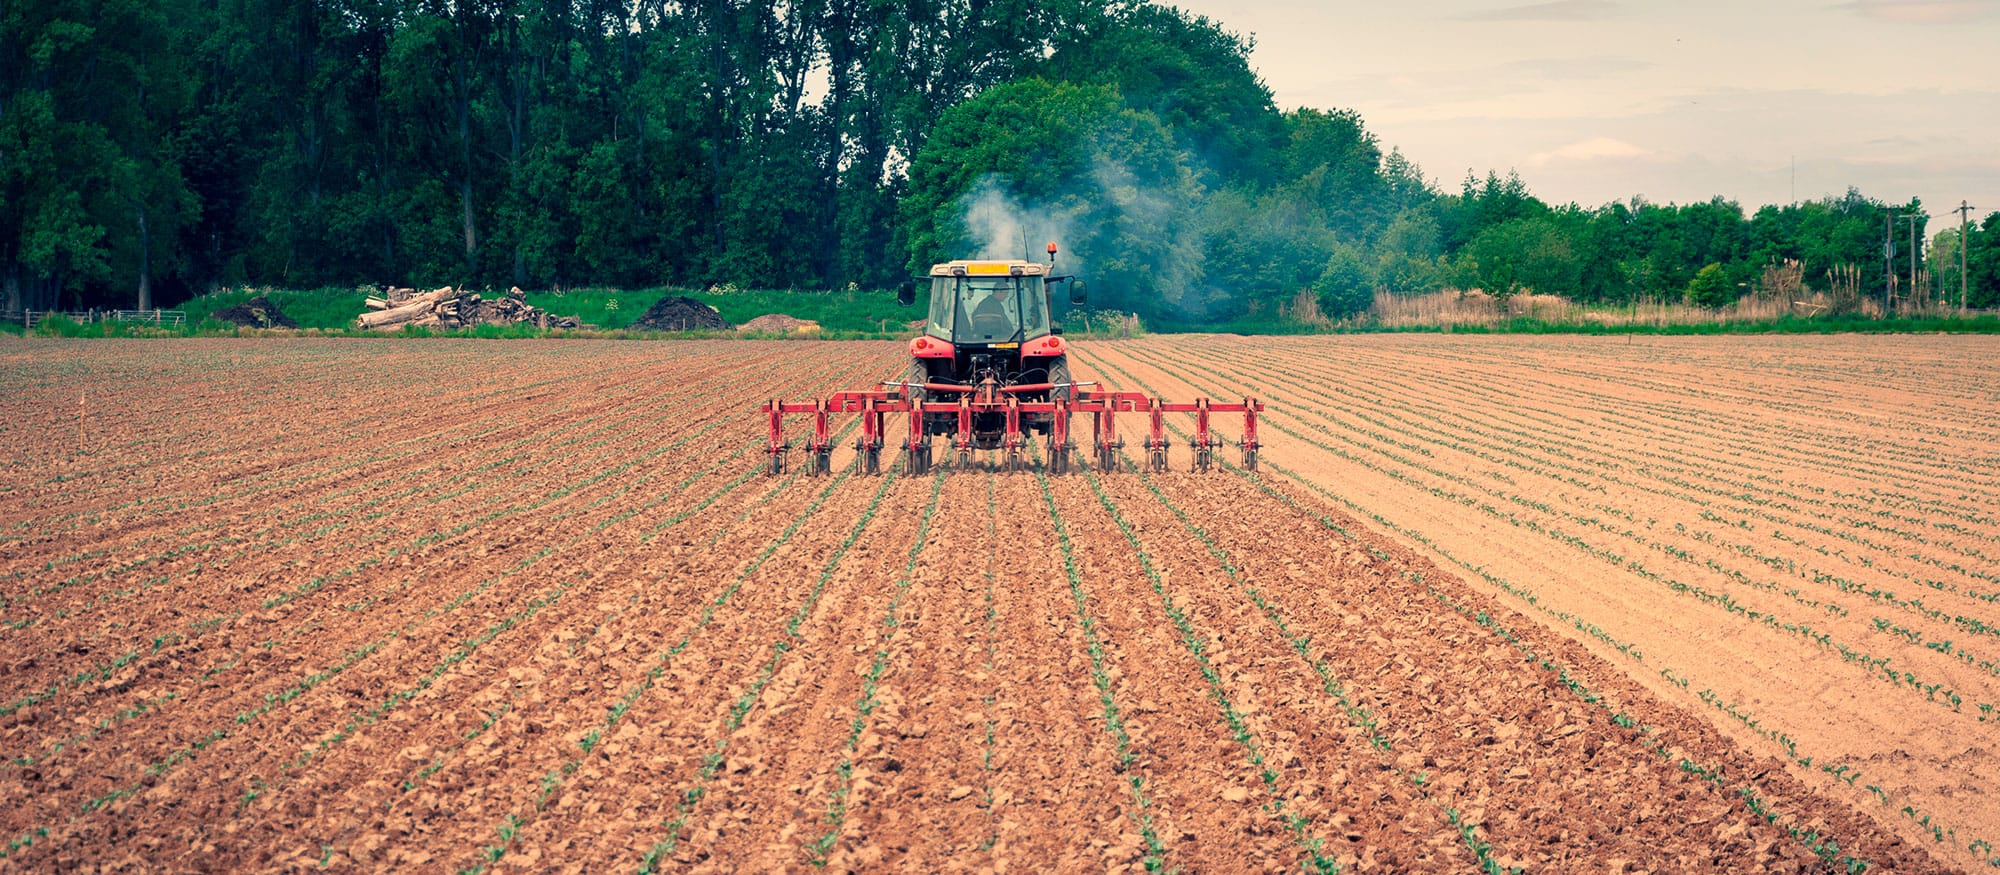 Farm Fumes: The Health Risks and Solutions